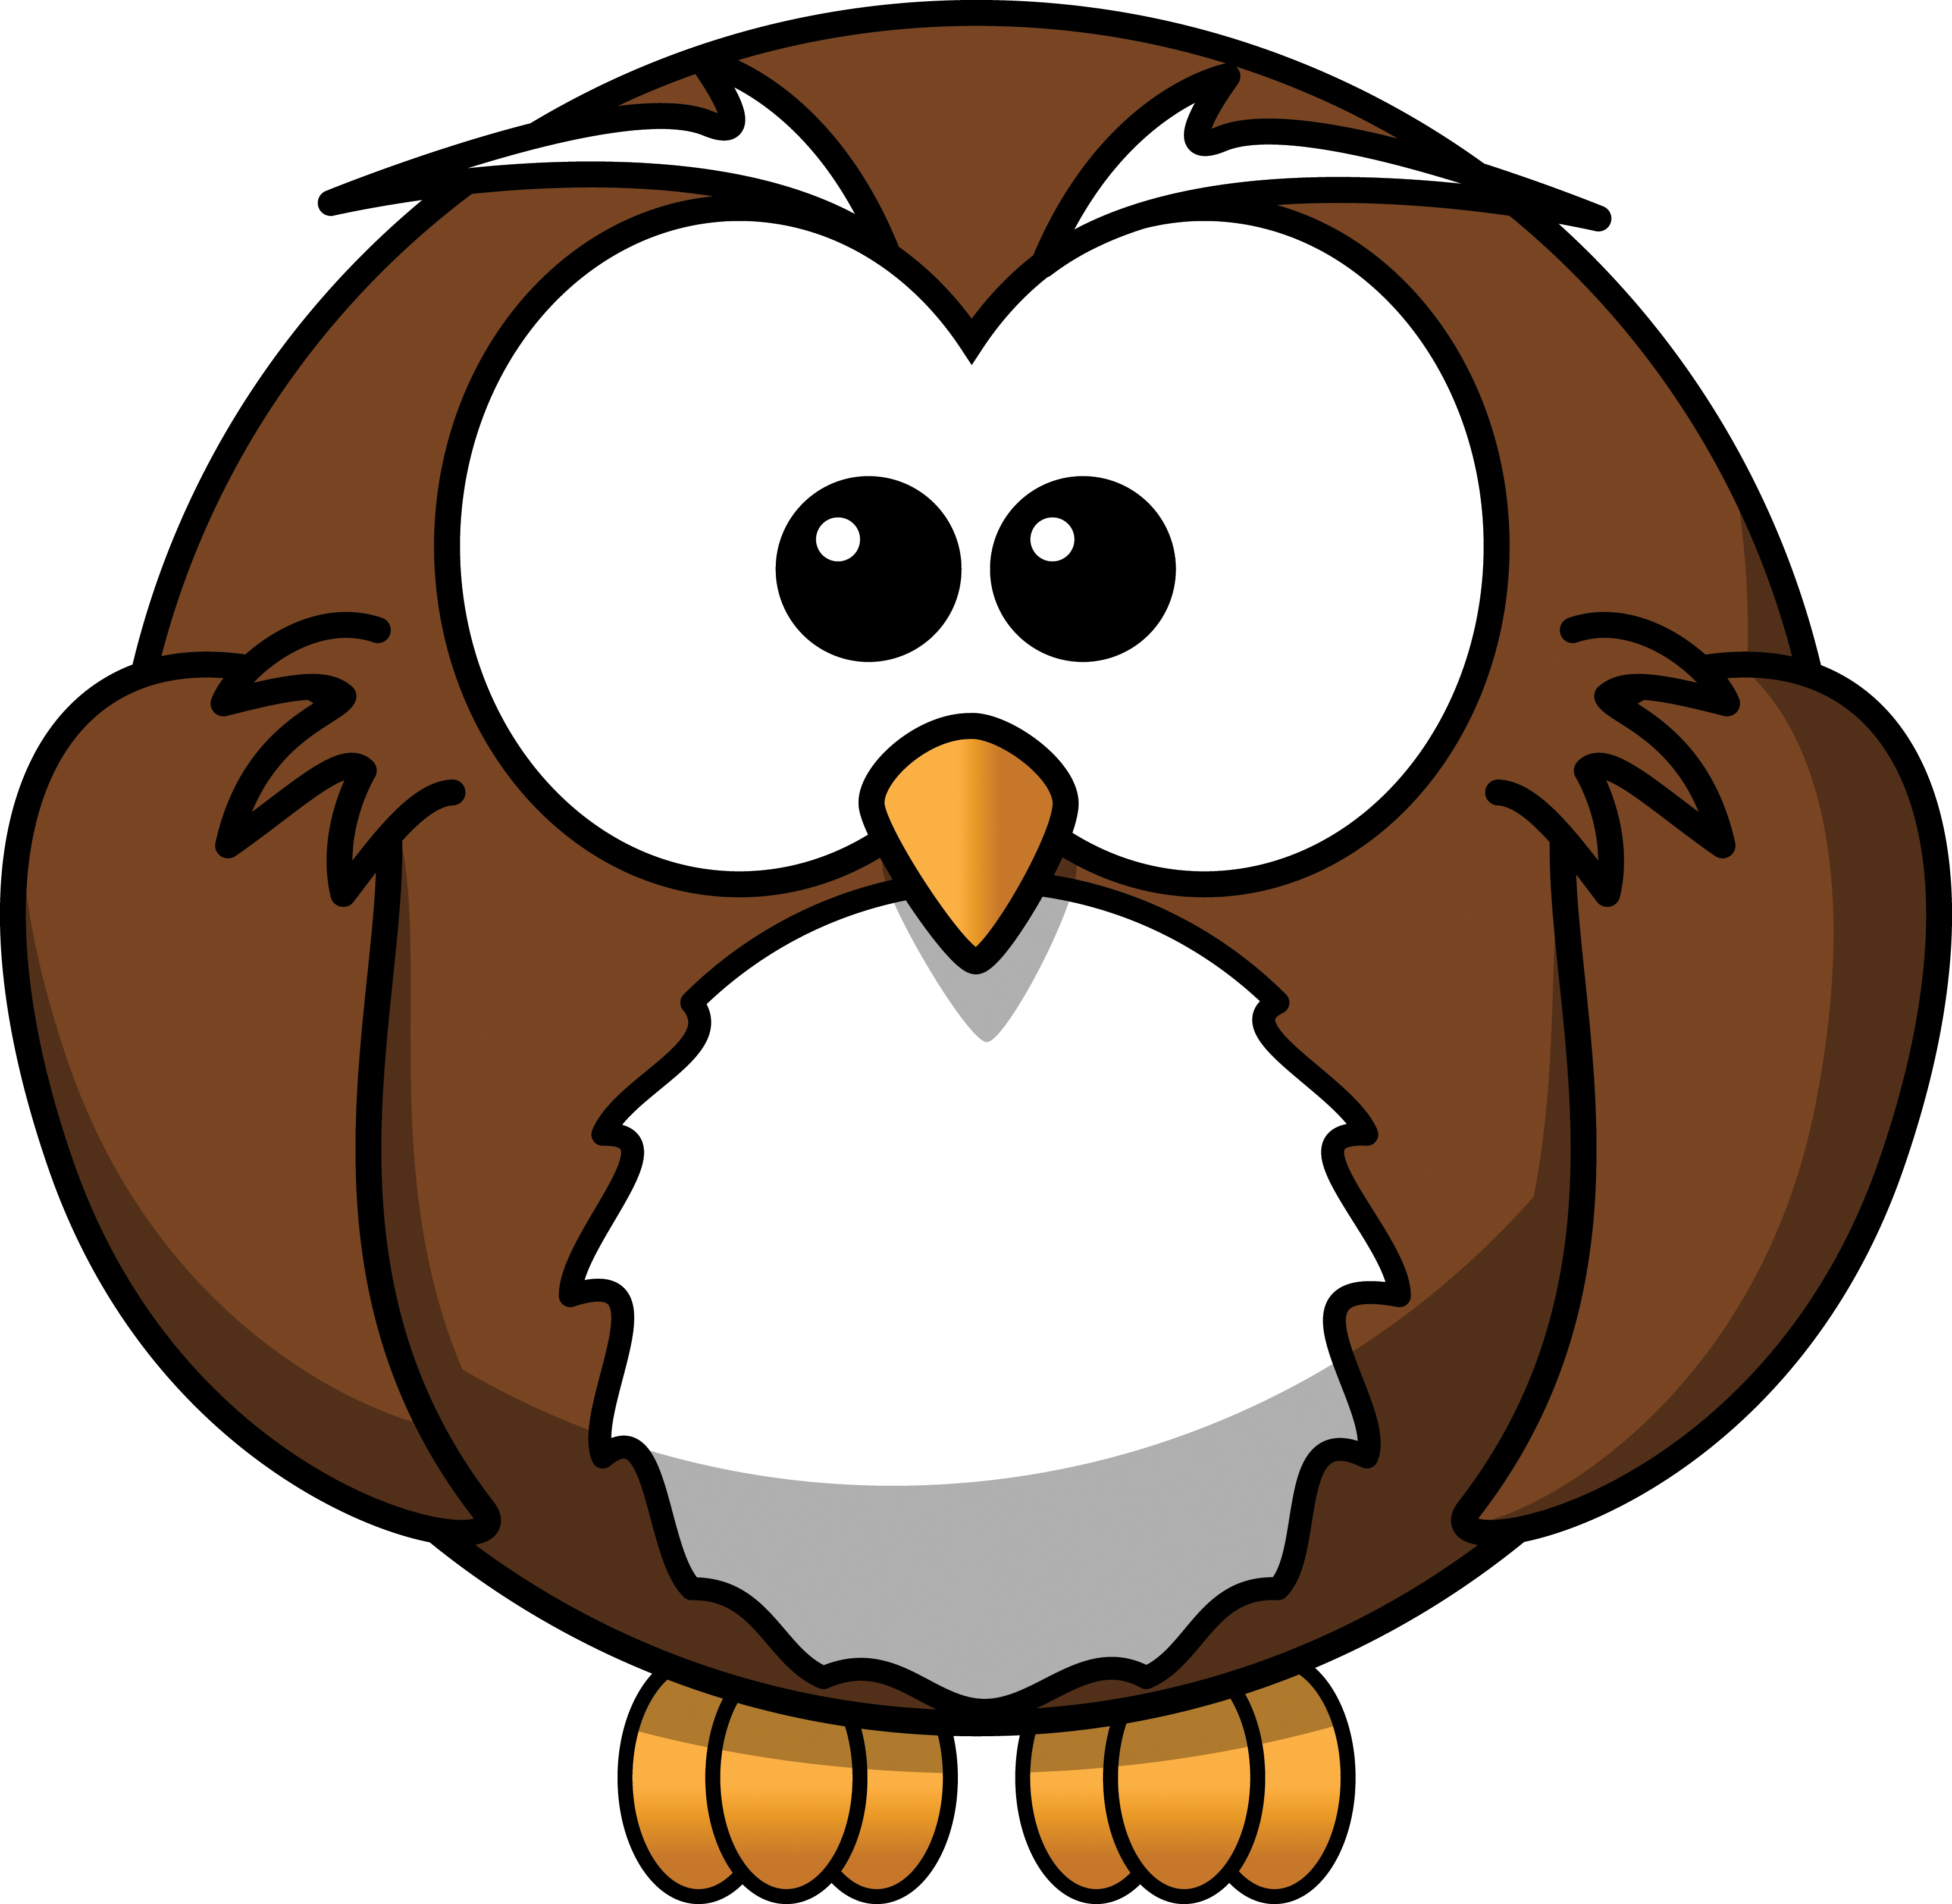 Free Cartoon Owl Clipart By 0001176 .-Free Cartoon Owl Clipart by 0001176 .-0